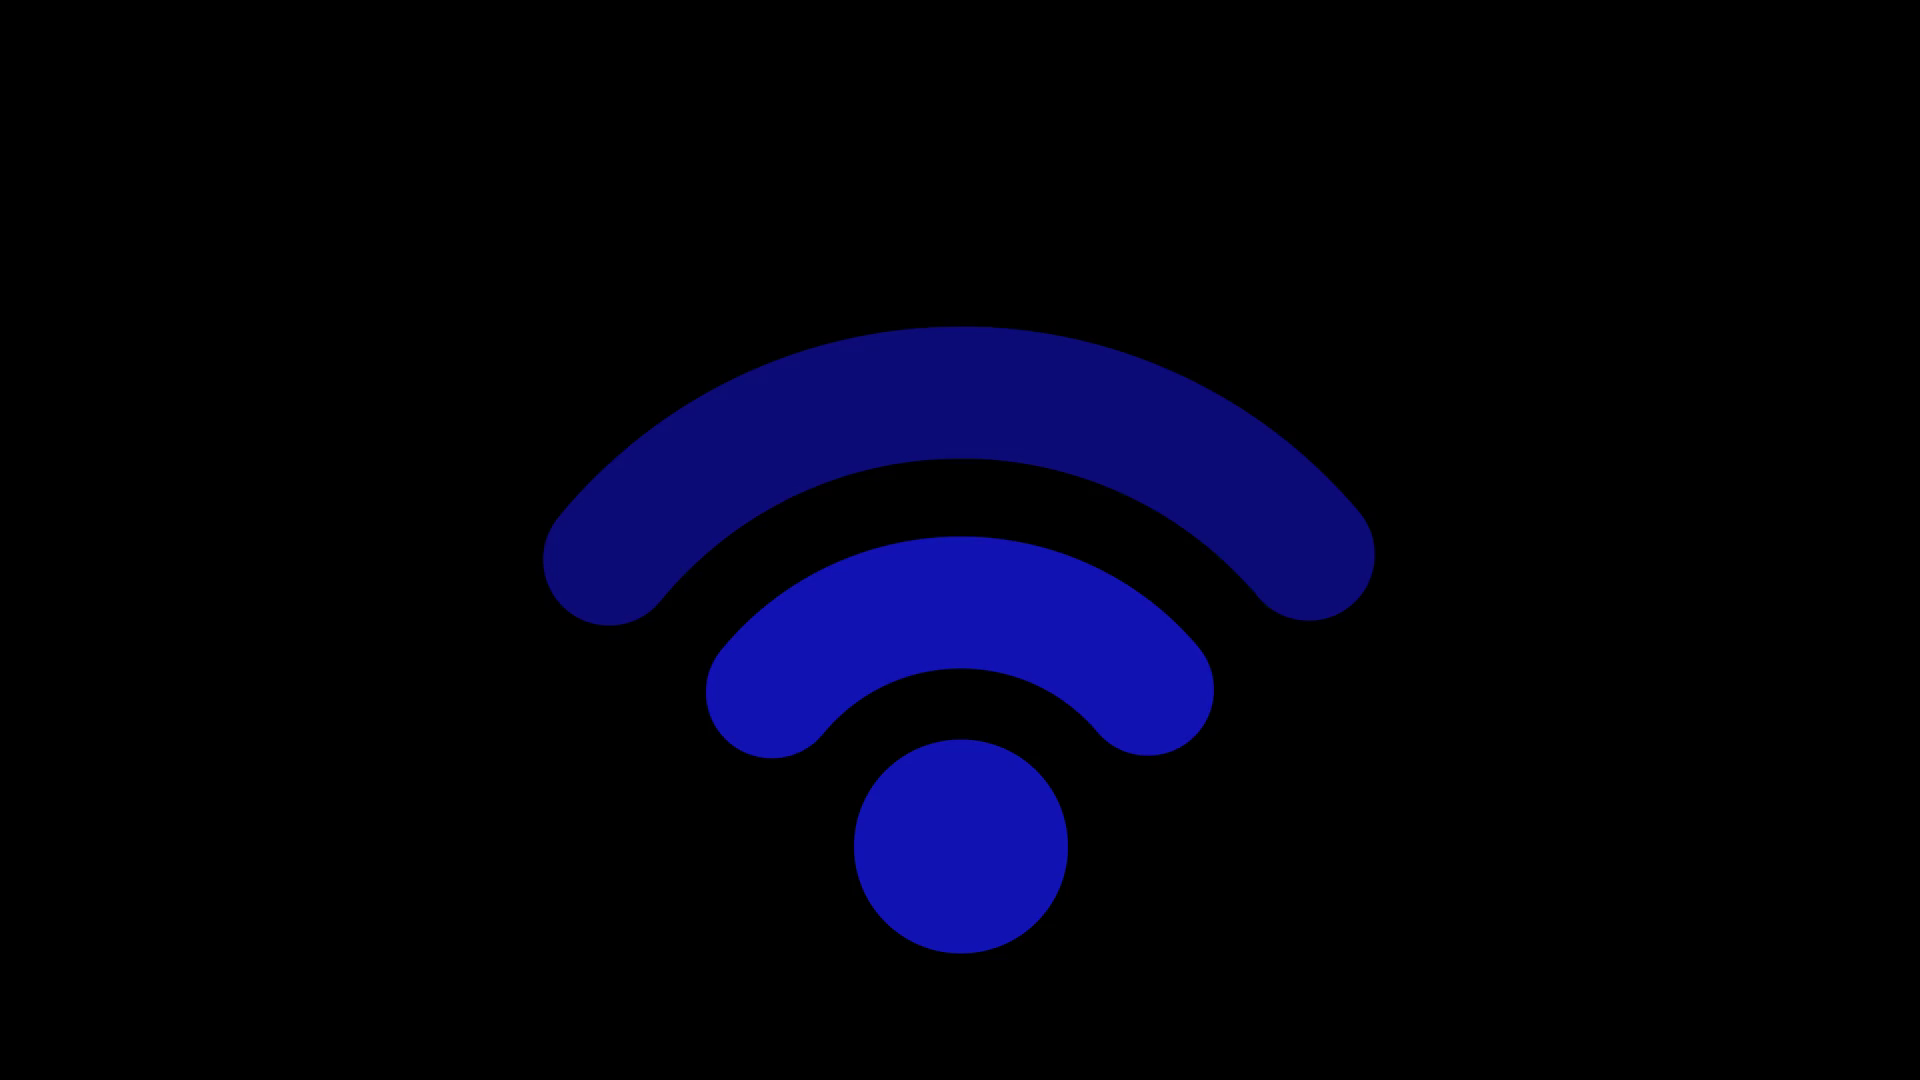 videoblocks-wireless-network-icon-wi-fi-symbol-animation-of-wifi-element-in-4k-on-dark-background_rjsvnmg0x_thumbnail-full01